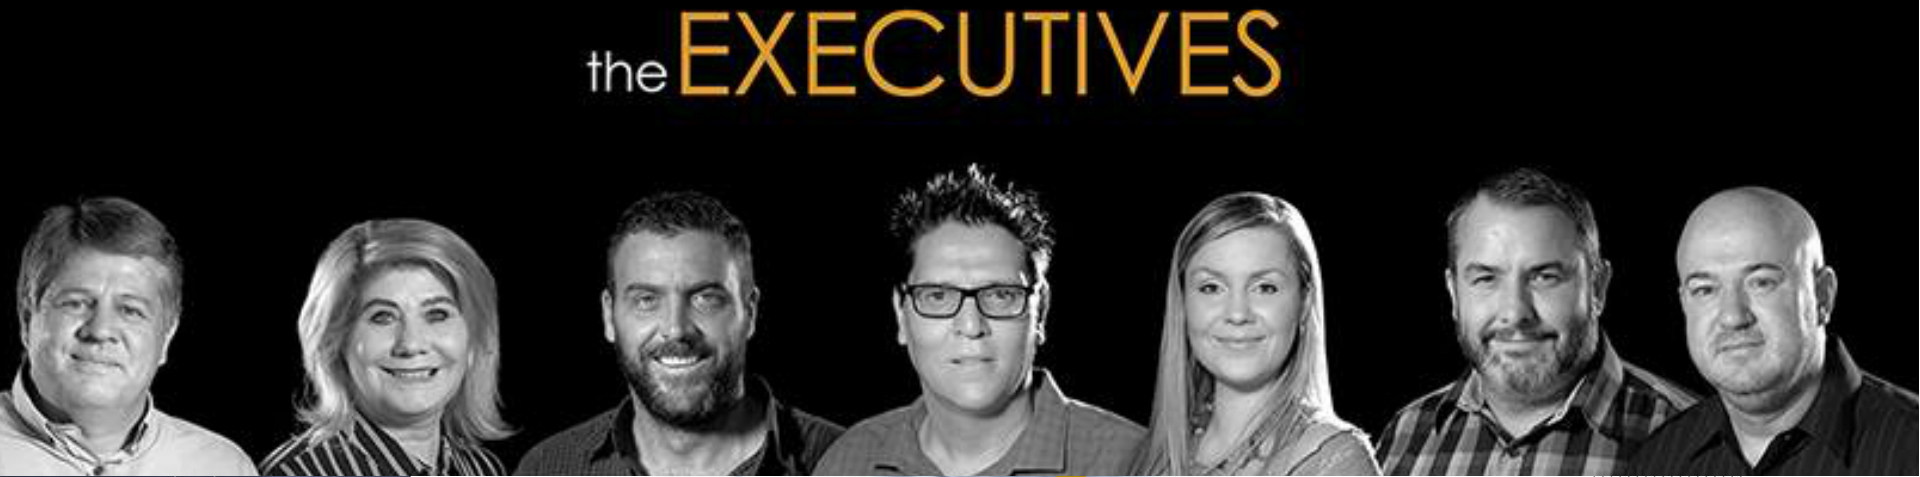 about-us-banner-executives.jpg